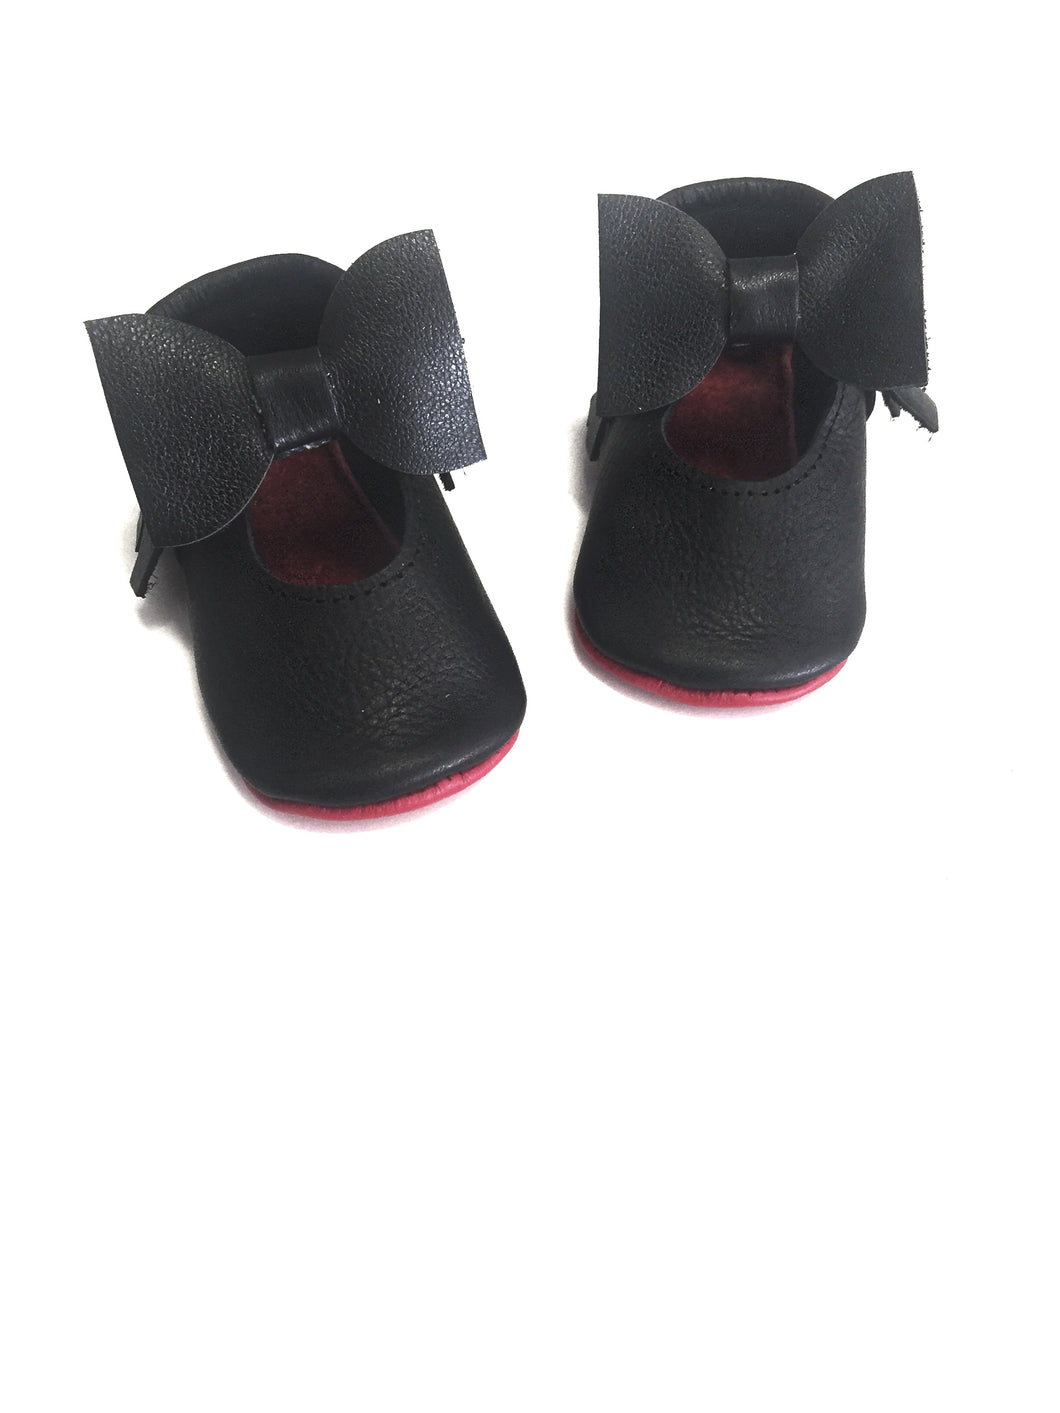 Black Mary Janes - Red bottoms